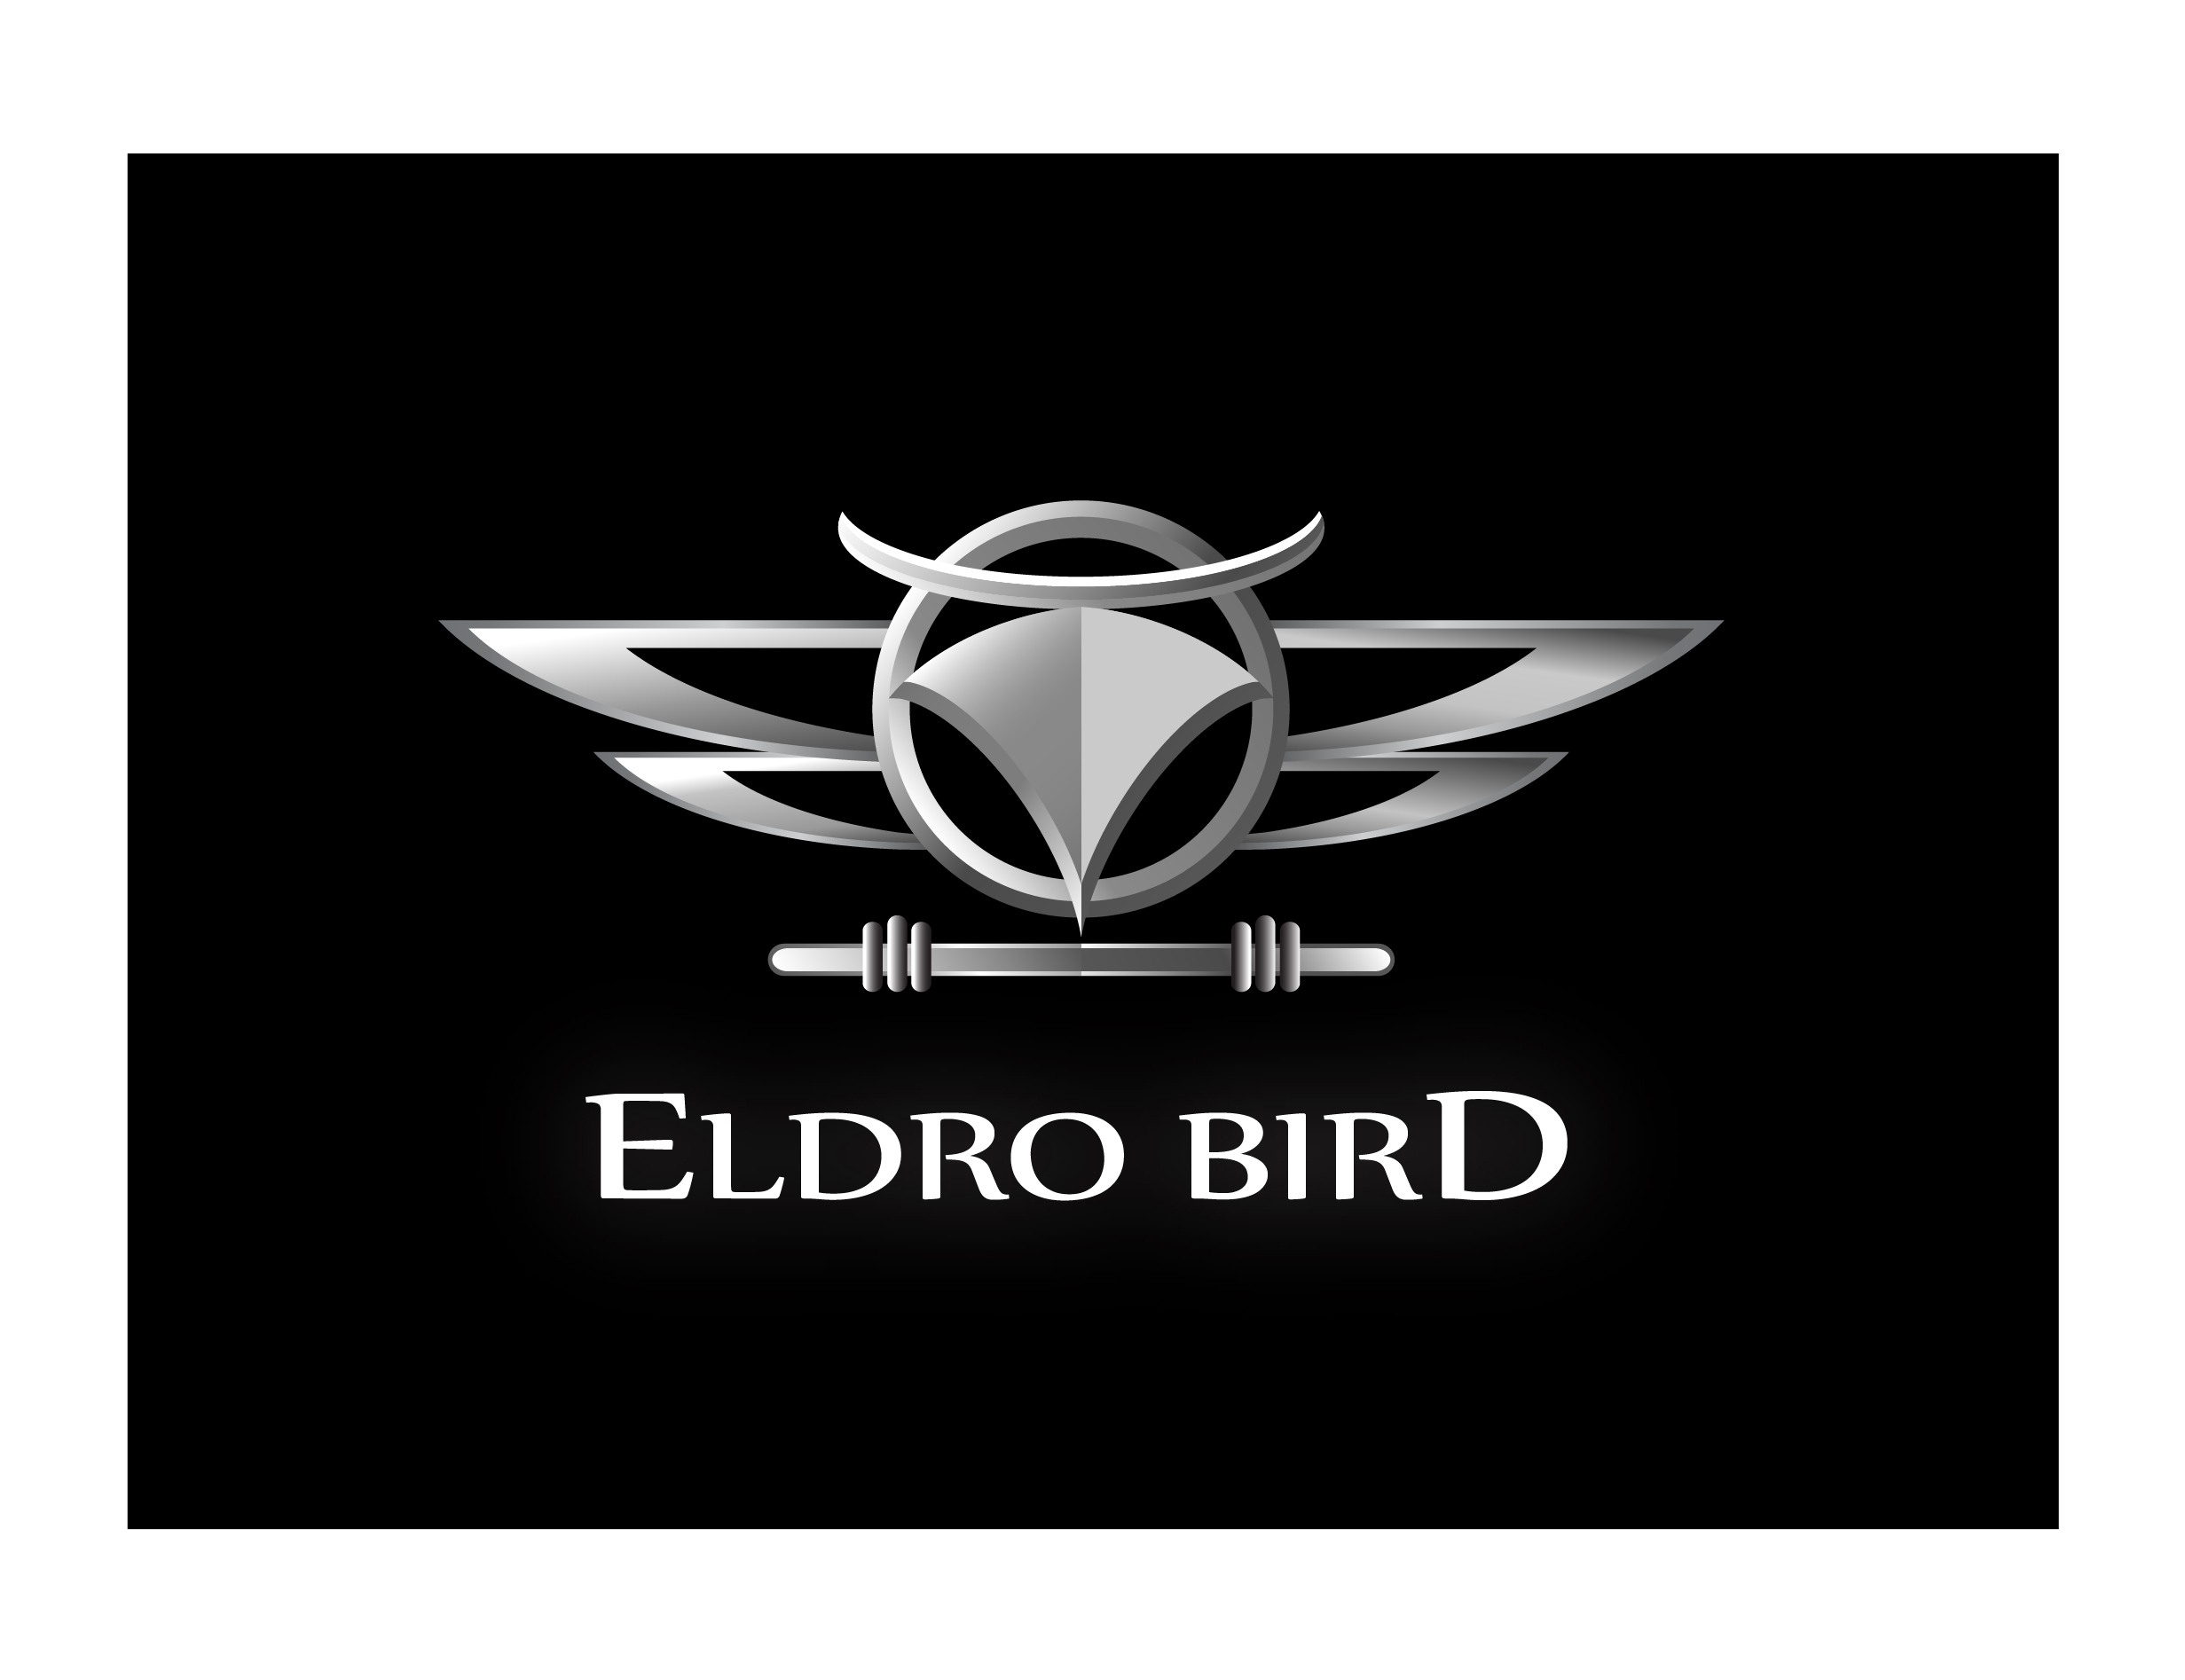 Logo Design by kowreck - Entry No. 101 in the Logo Design Contest New Logo Design for Bird car.